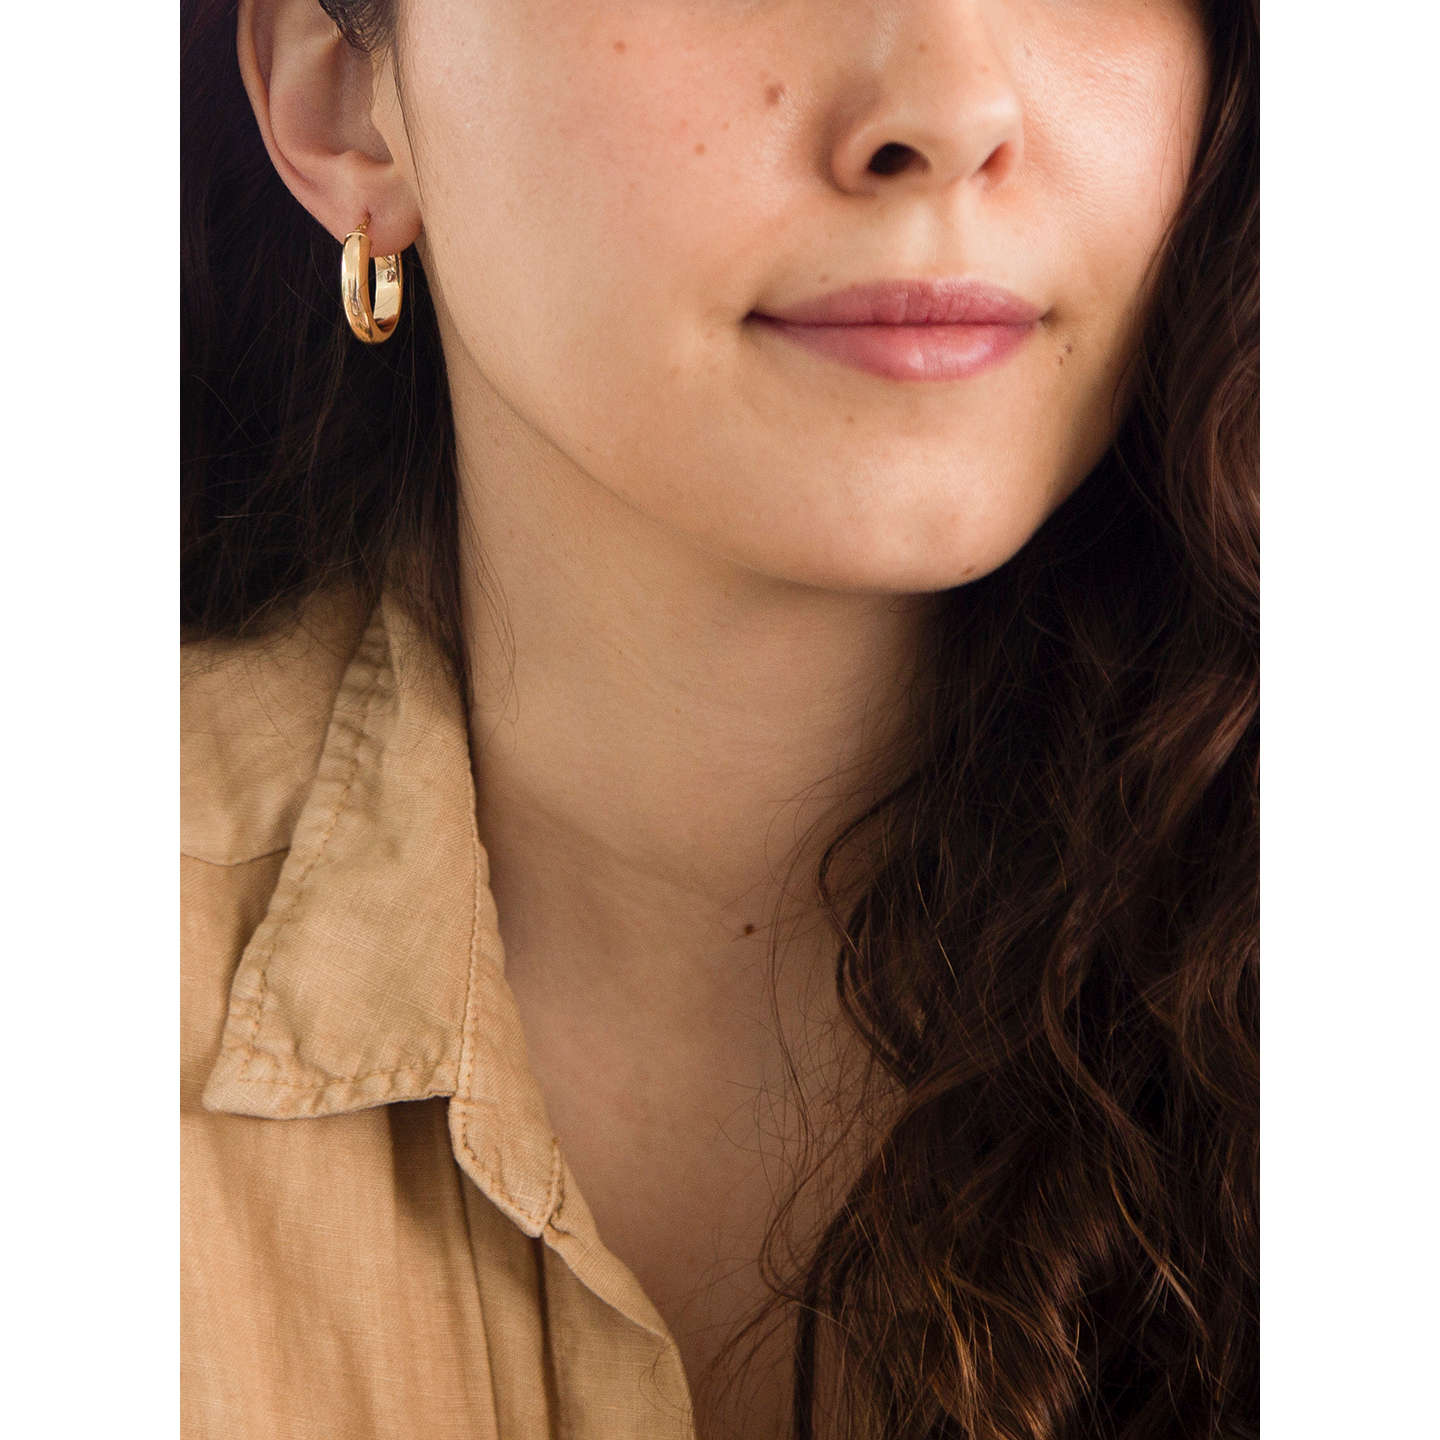 Ibb 9ct Yellow Gold Polished Oval Creole Earrings Online At Johnlewis